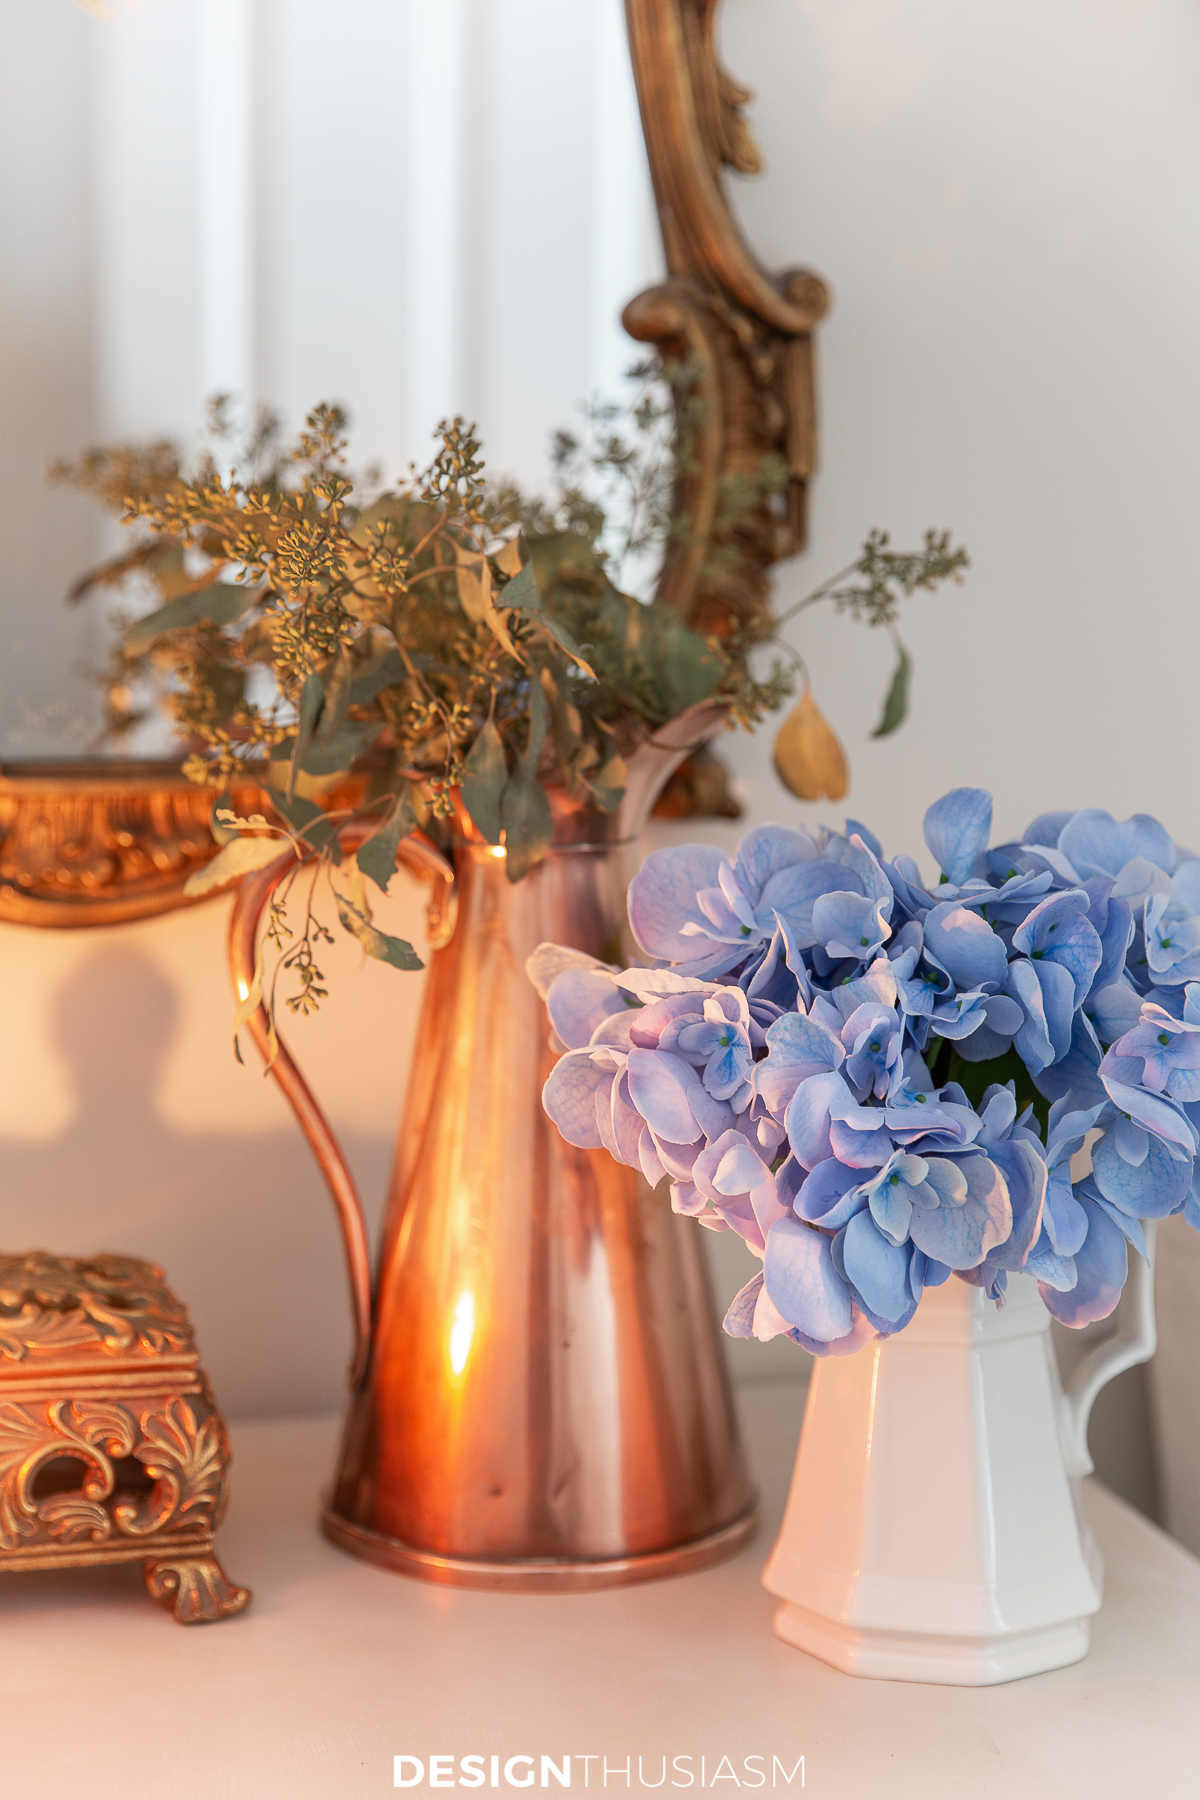 5 Fall Entryway Ideas to Warm Up a Small Foyer to Welcome Guests